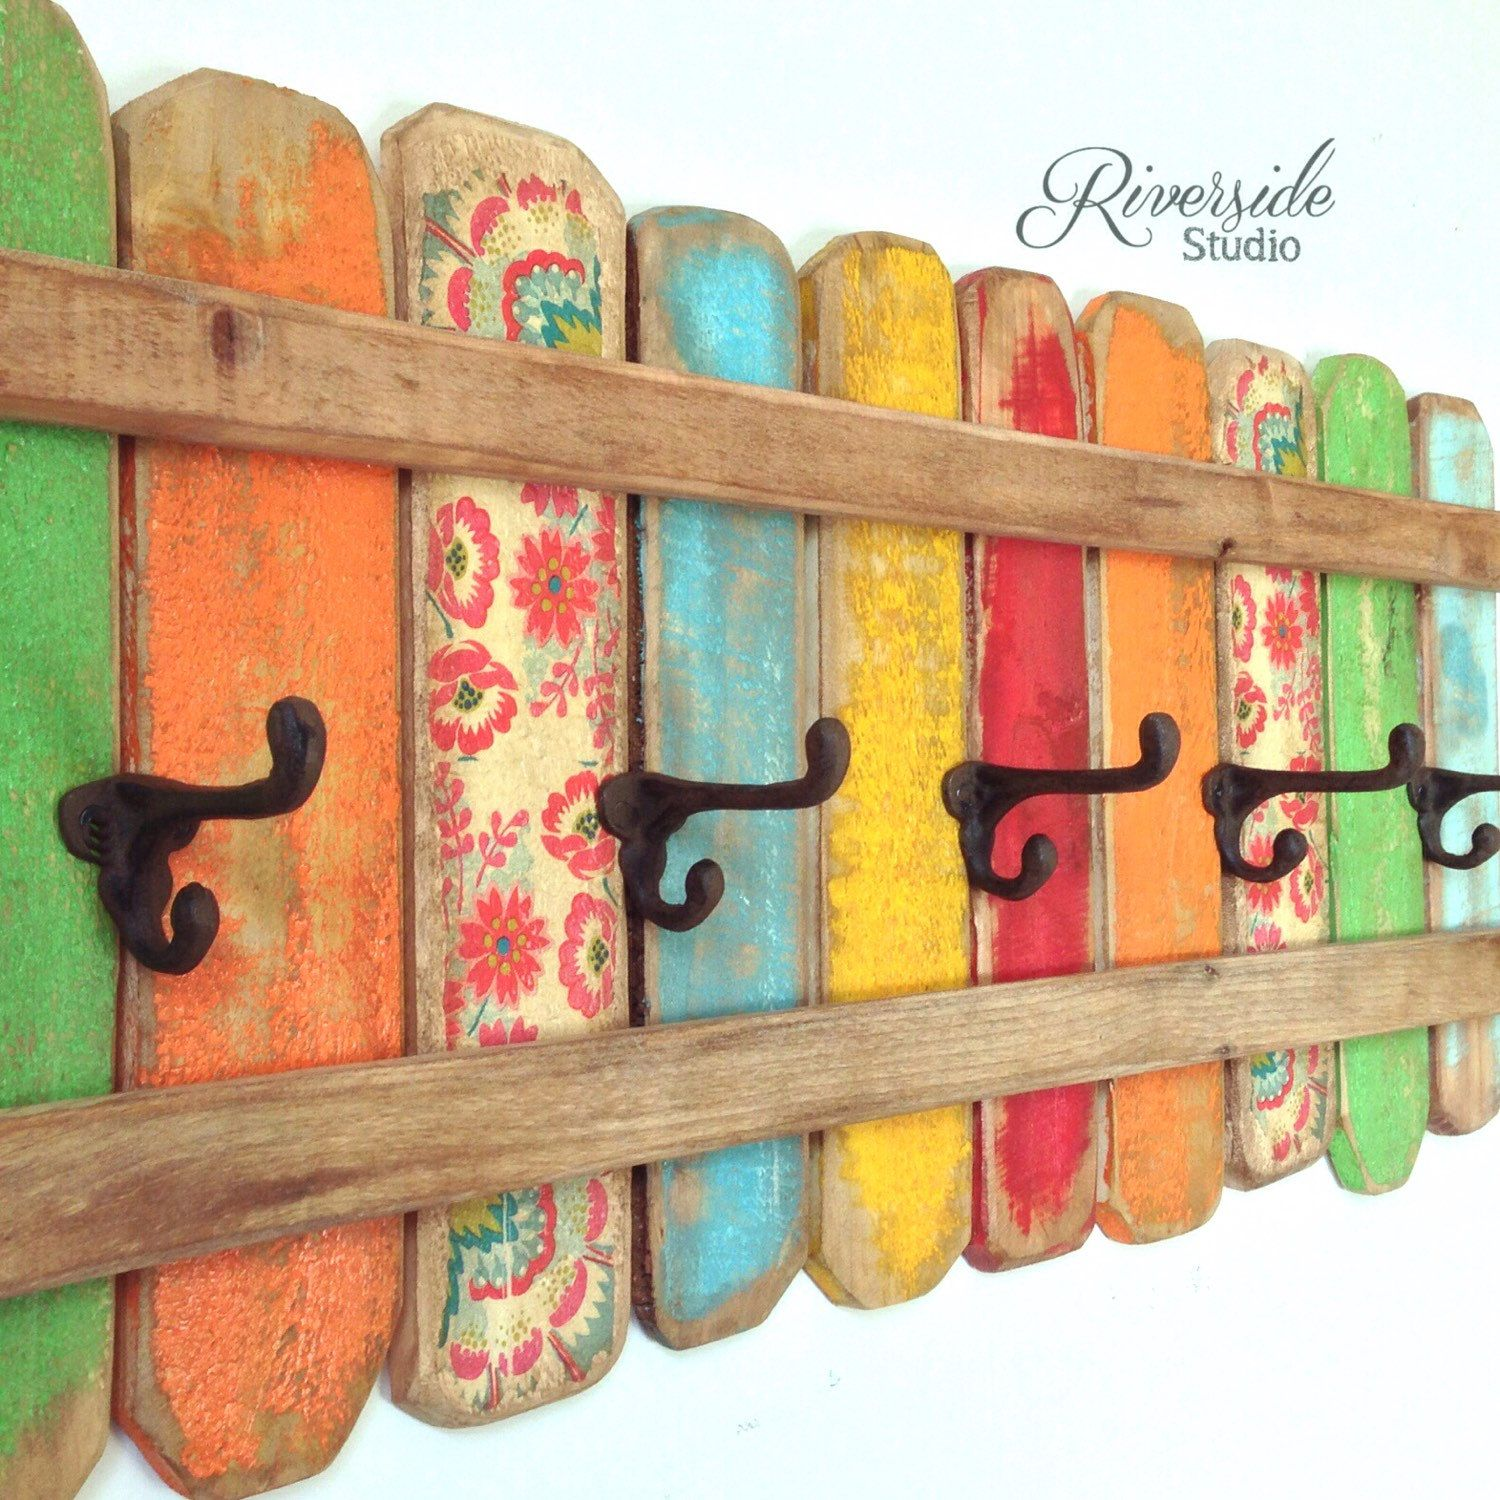 Updates From Riversidestudioon On Etsy 15 Things To Give Up  # Muebles Faciles Liniers